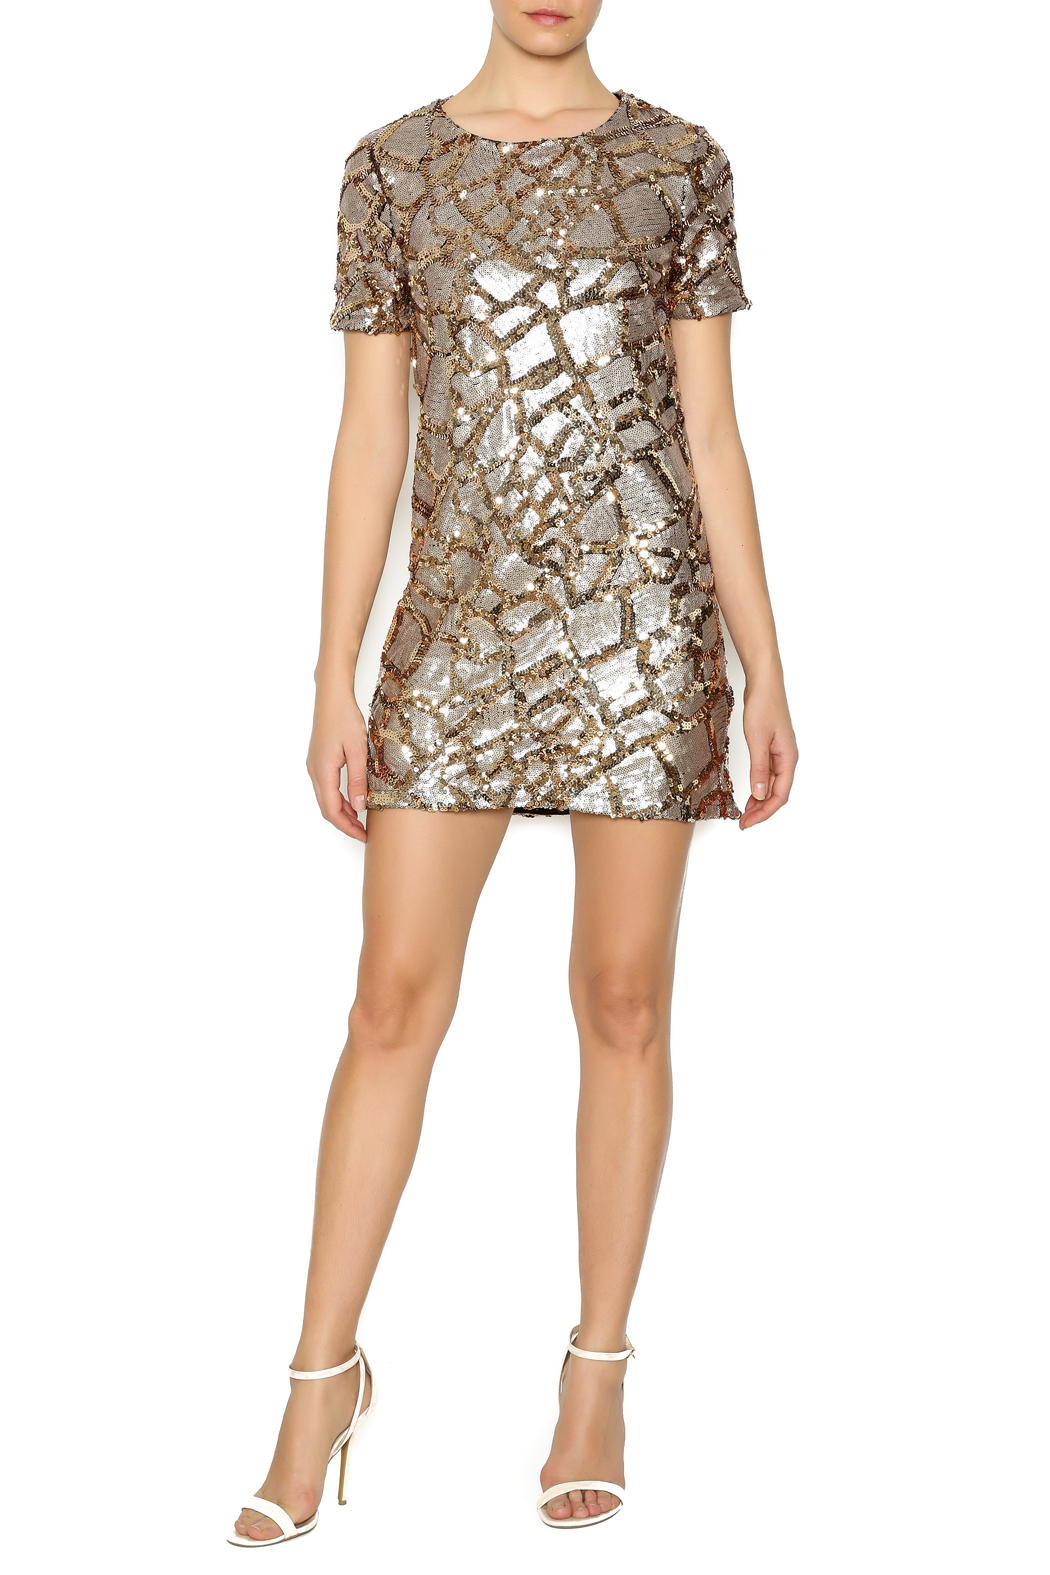 ENTRY Gold Sequin Dress - Front Full Image